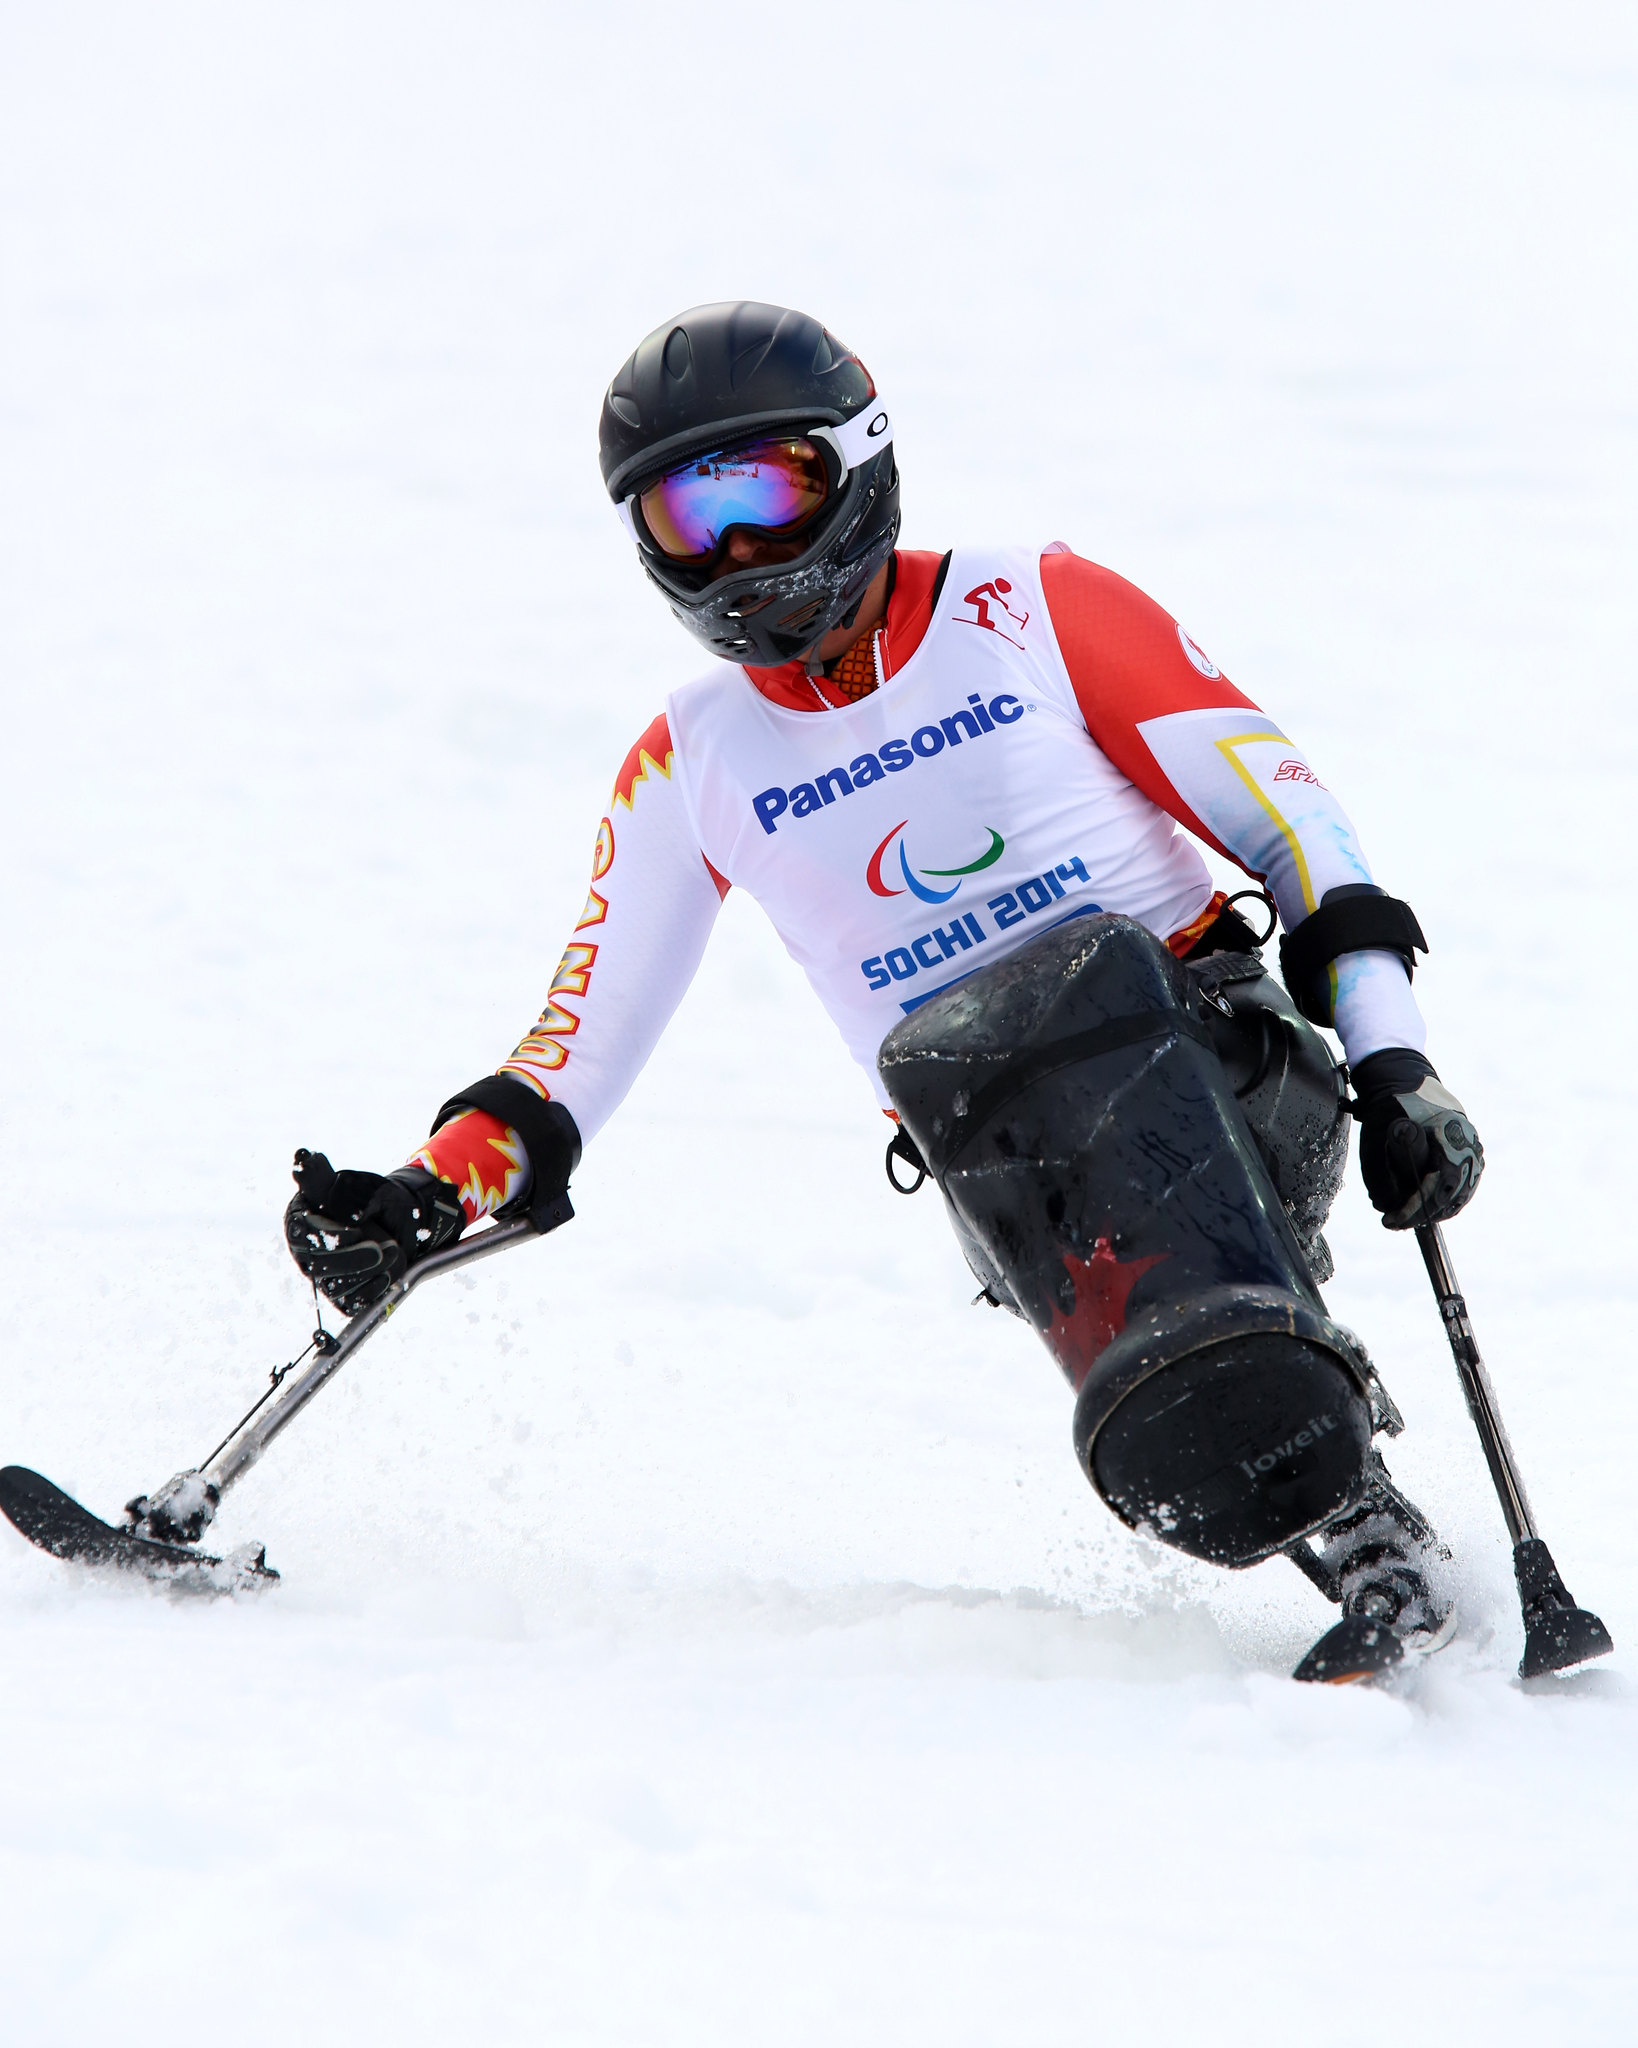 Josh Dueck competes in the Slalom at the Paralympic Winter Games in Sochi, RUS